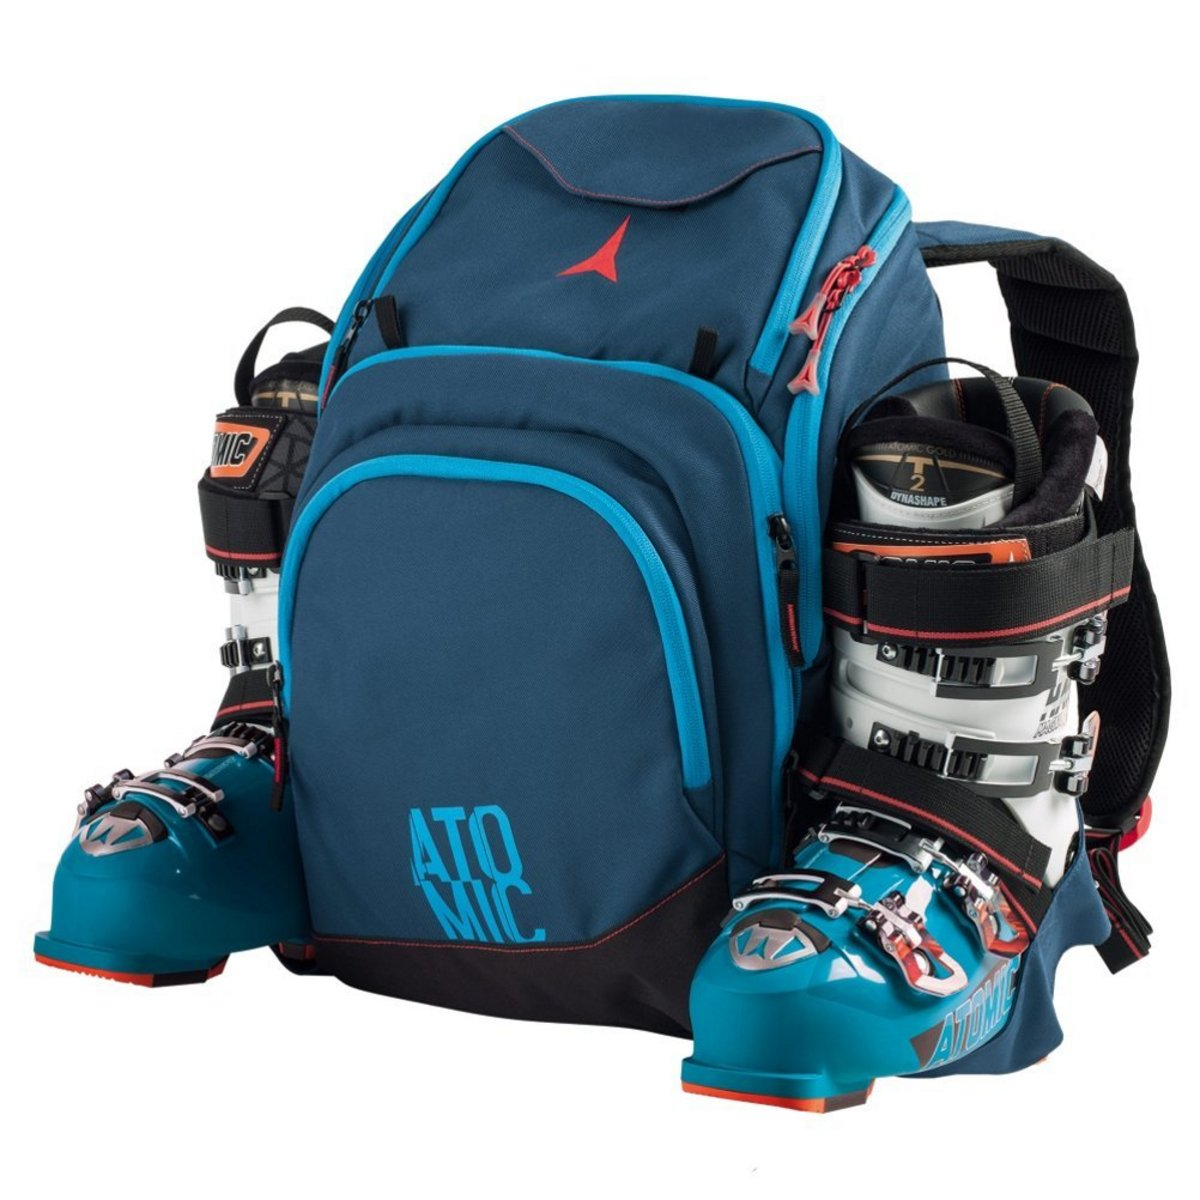 Amt Boot And Travel Backpack Fontana Sports